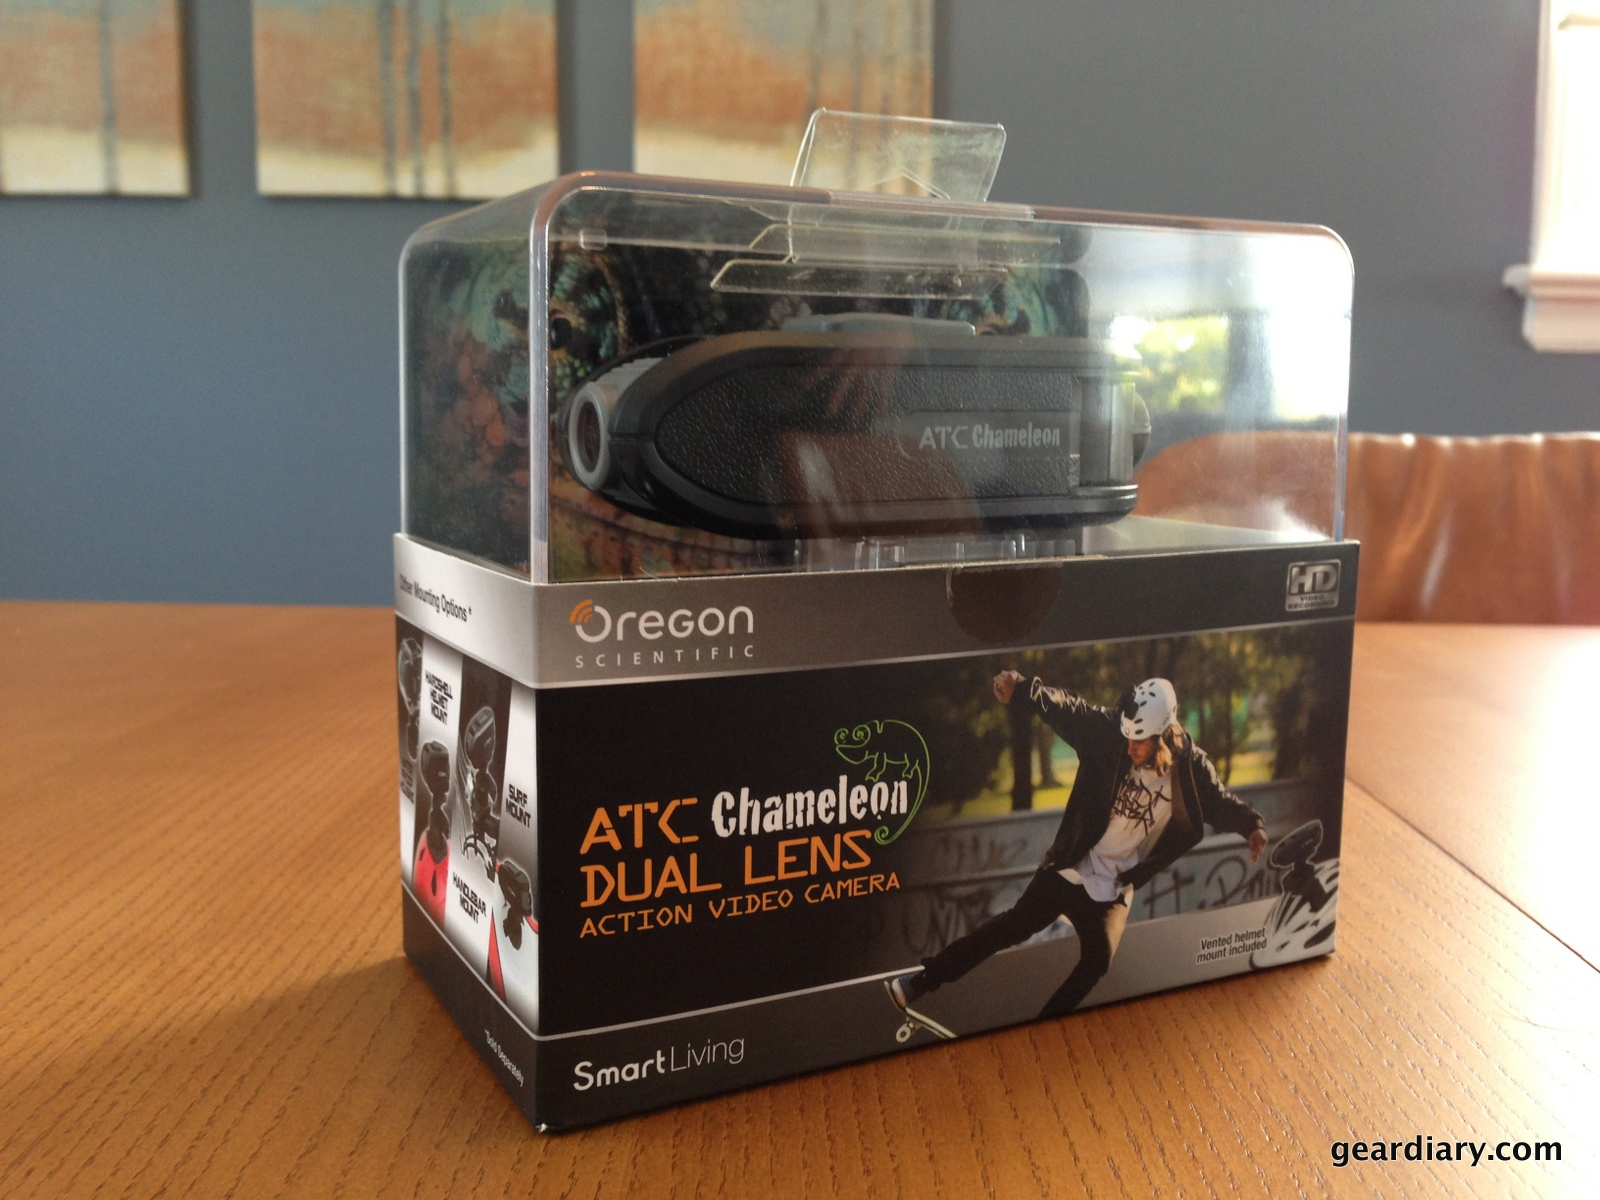 GearDiary Oregon Scientific ATC Chameleon Action Camera Review